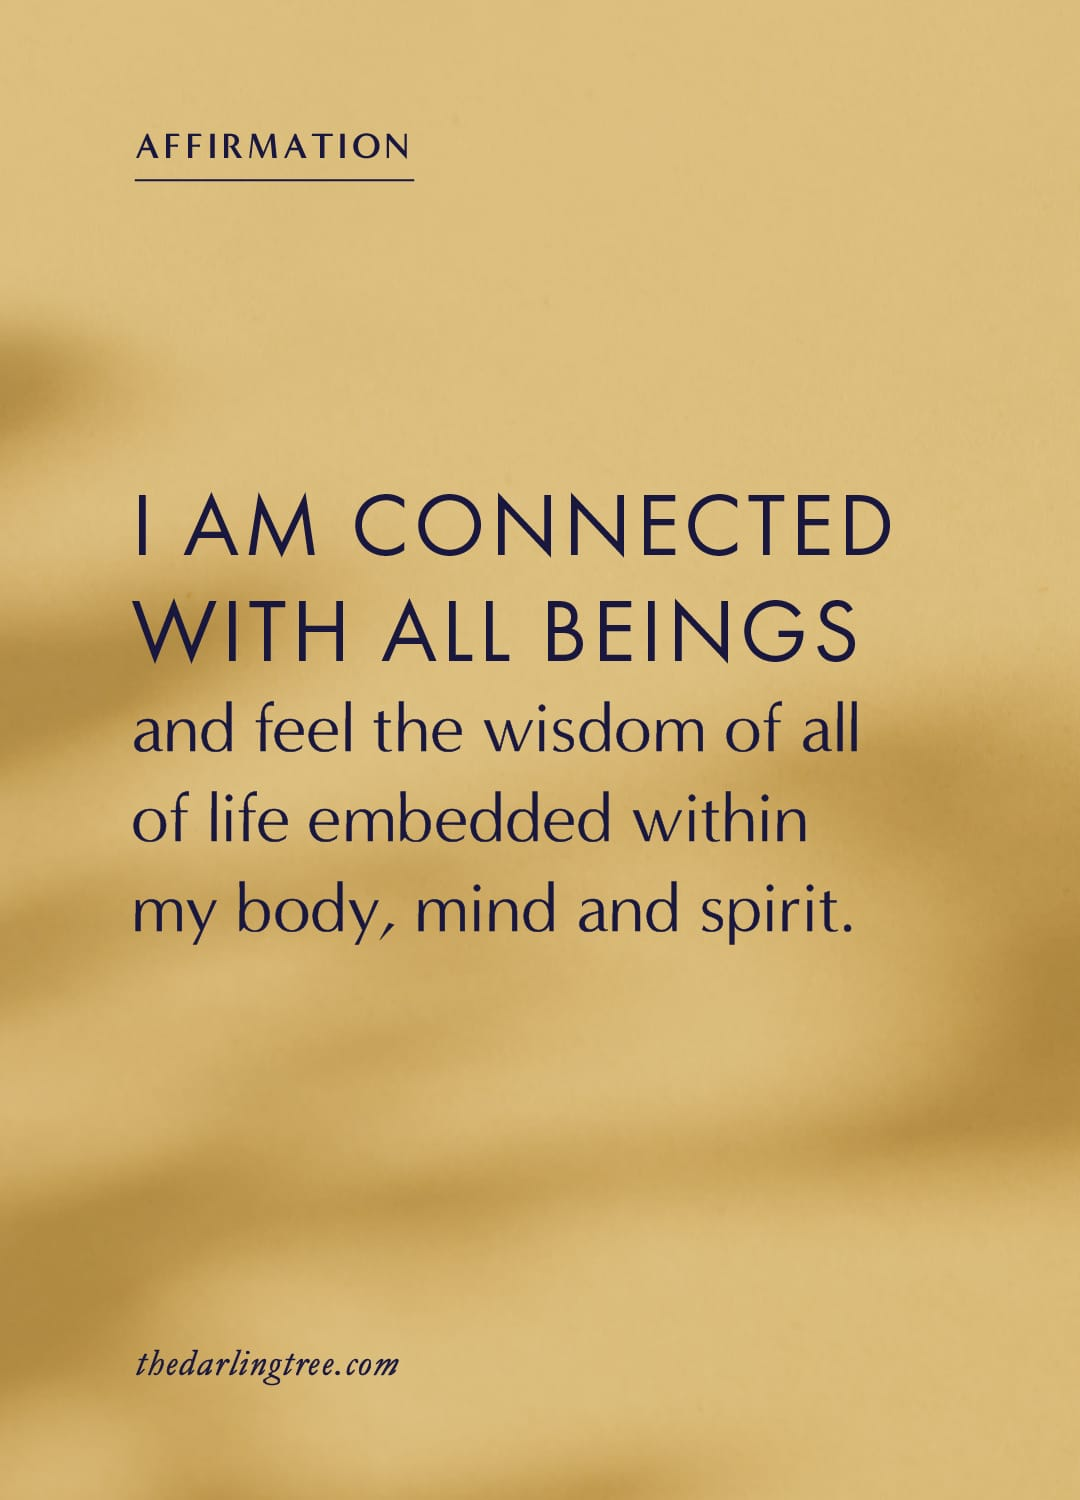 I am connected with all beings